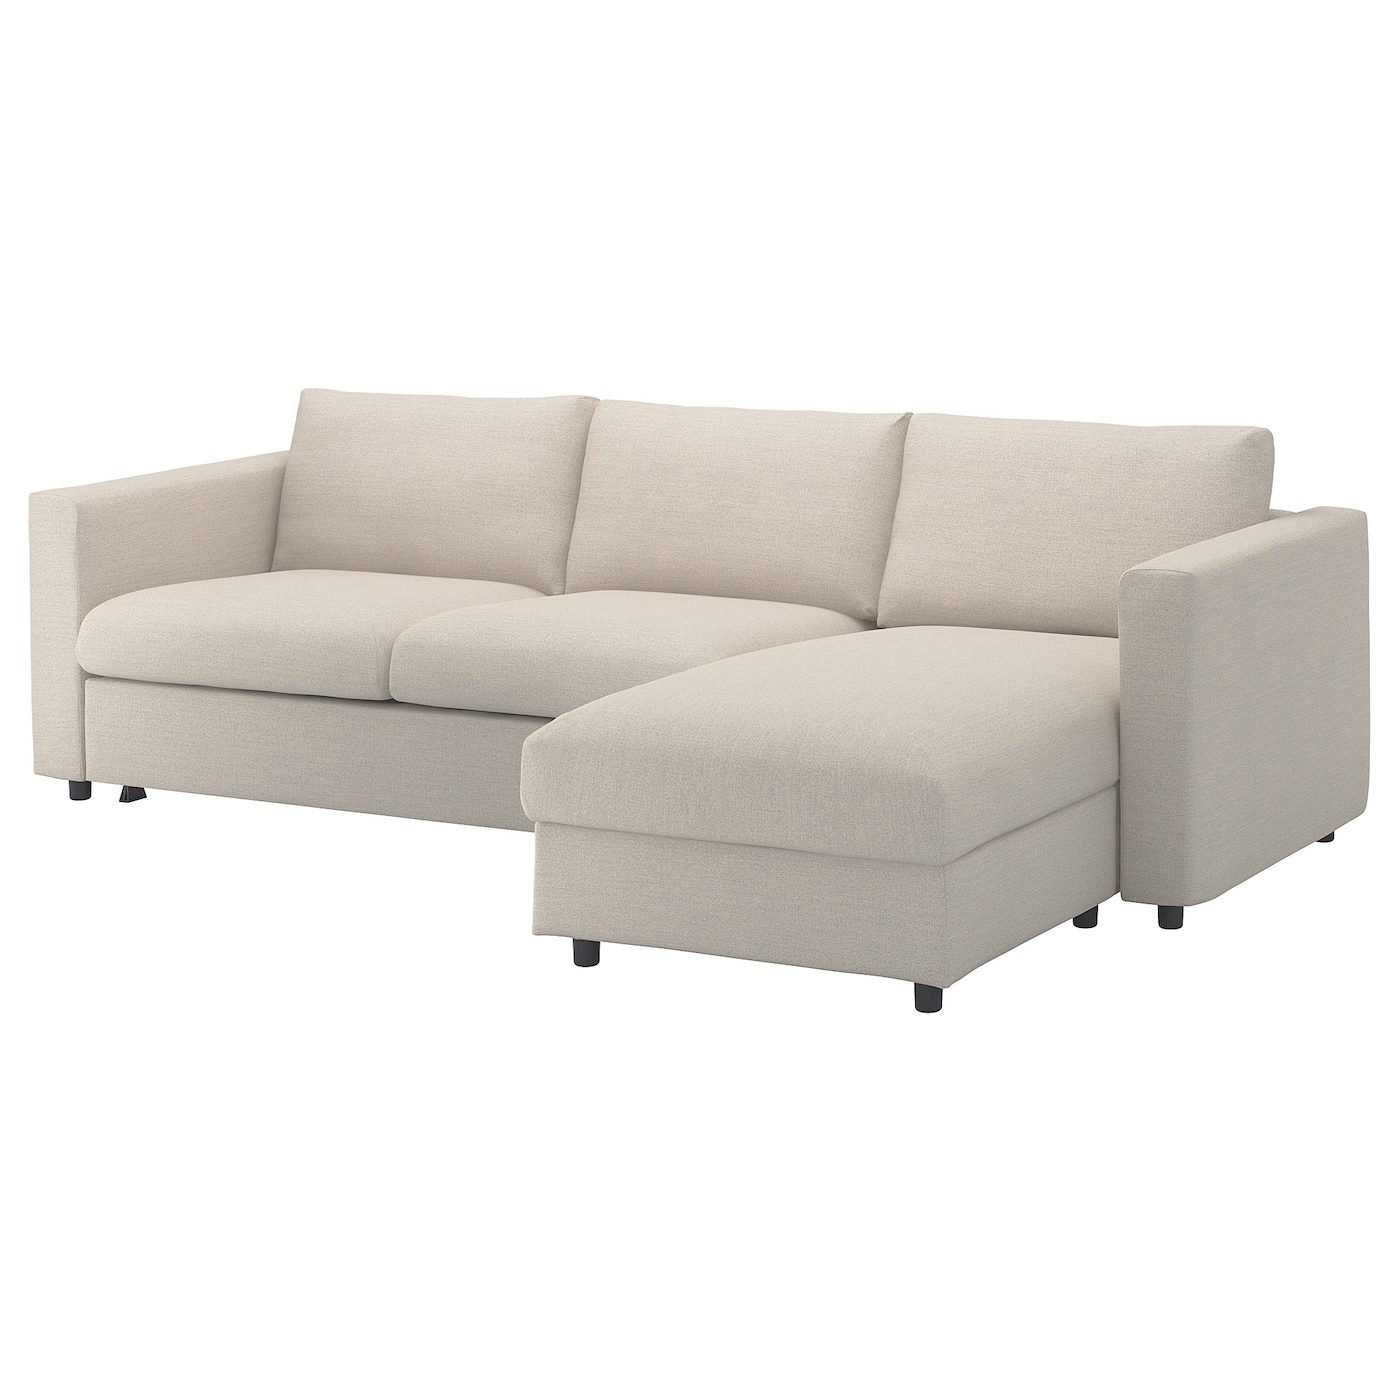 - VIMLE Cover For Sleeper Sofa, With Chaise/Gunnared Beige - IKEA